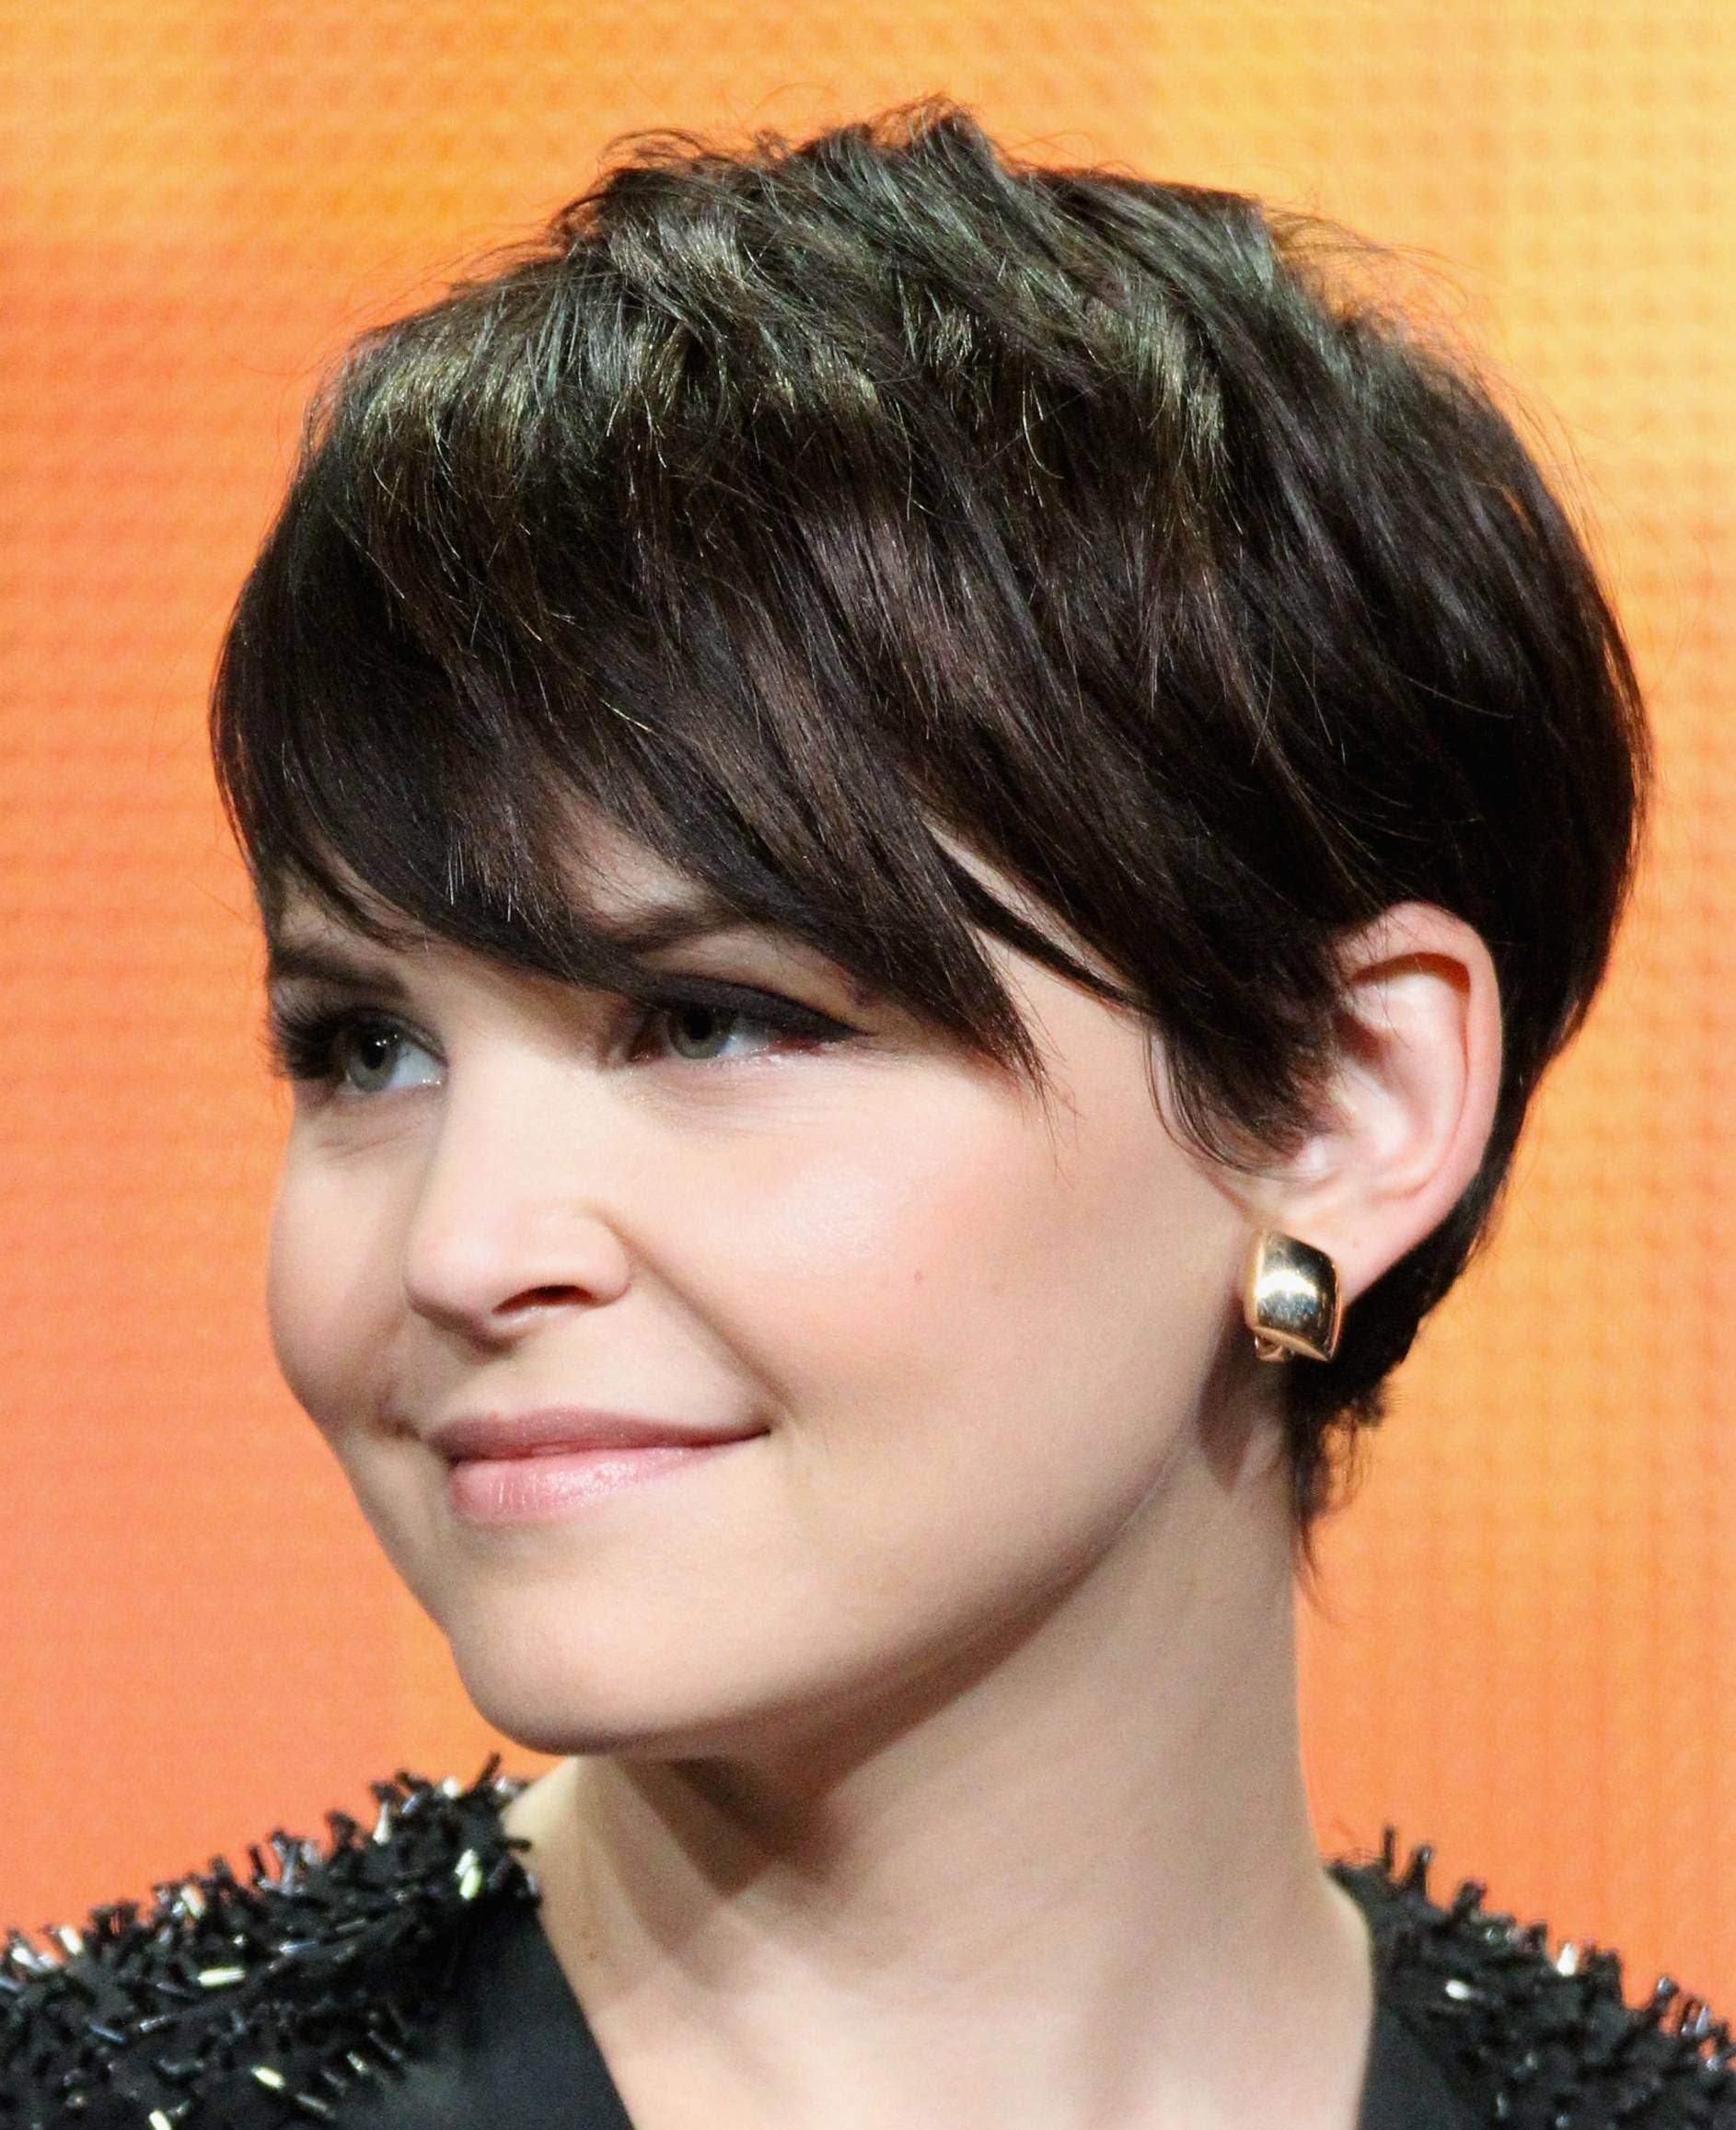 haircut style book pixie haircut the ultimate pixie cuts guide 5760